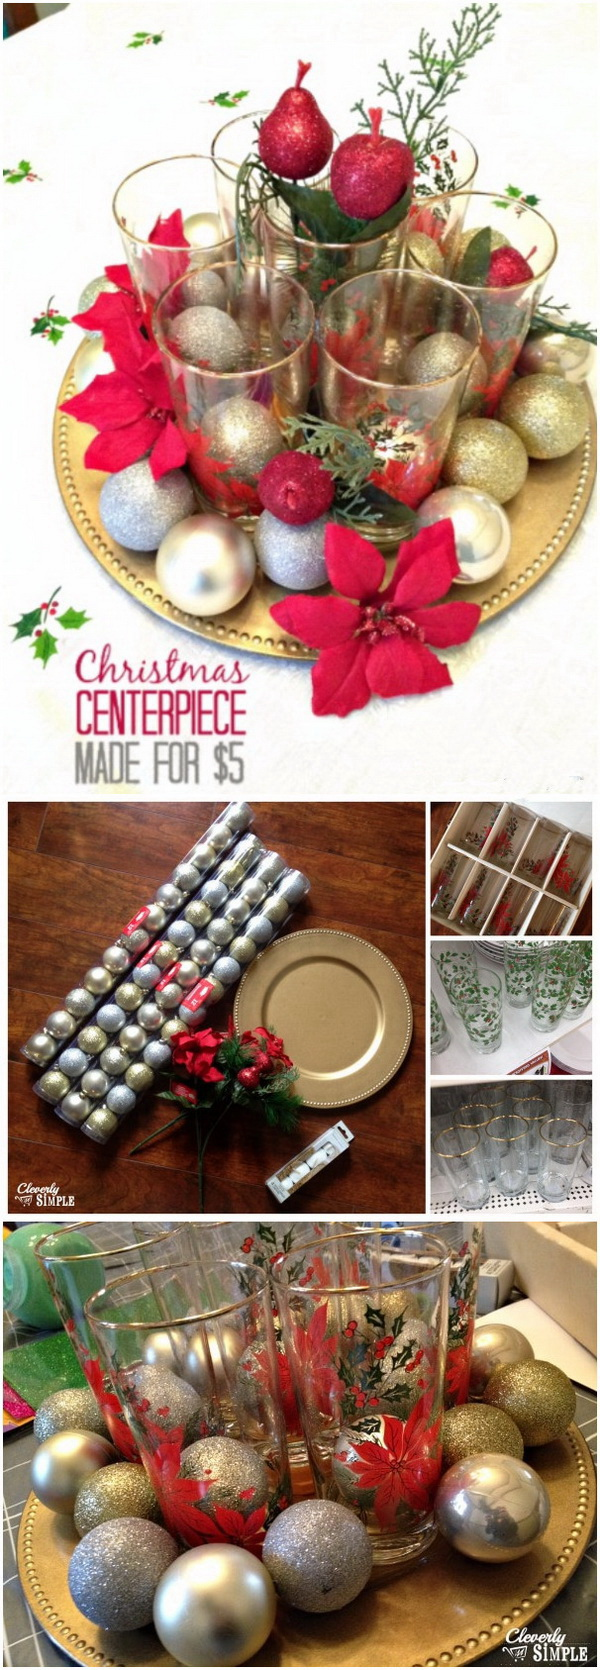 meaningful christmas centerpiece super easy diy table centerpiece for christmas made with dollar store finds